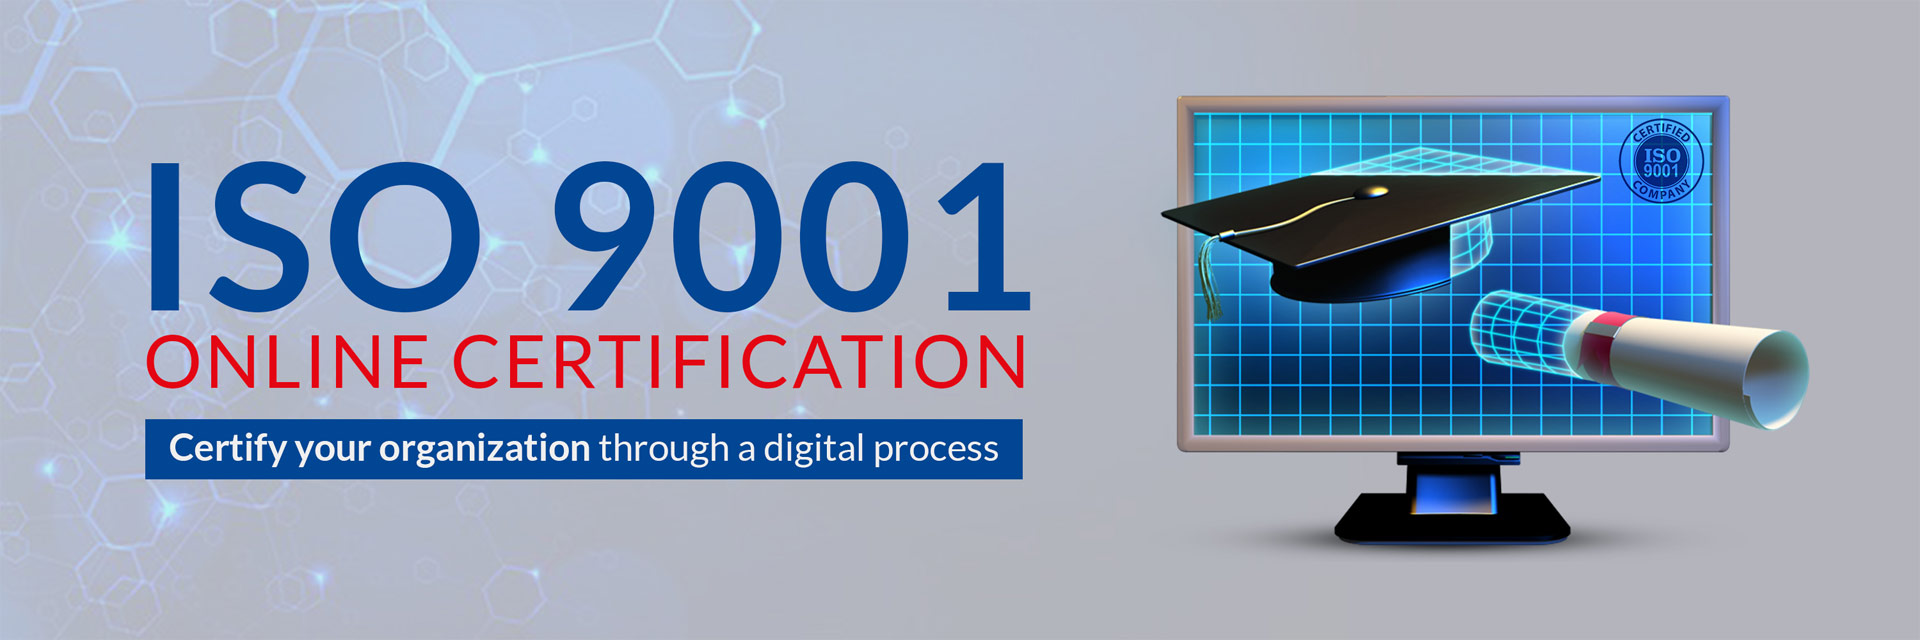 Dicis-certification-process-iso-9001_